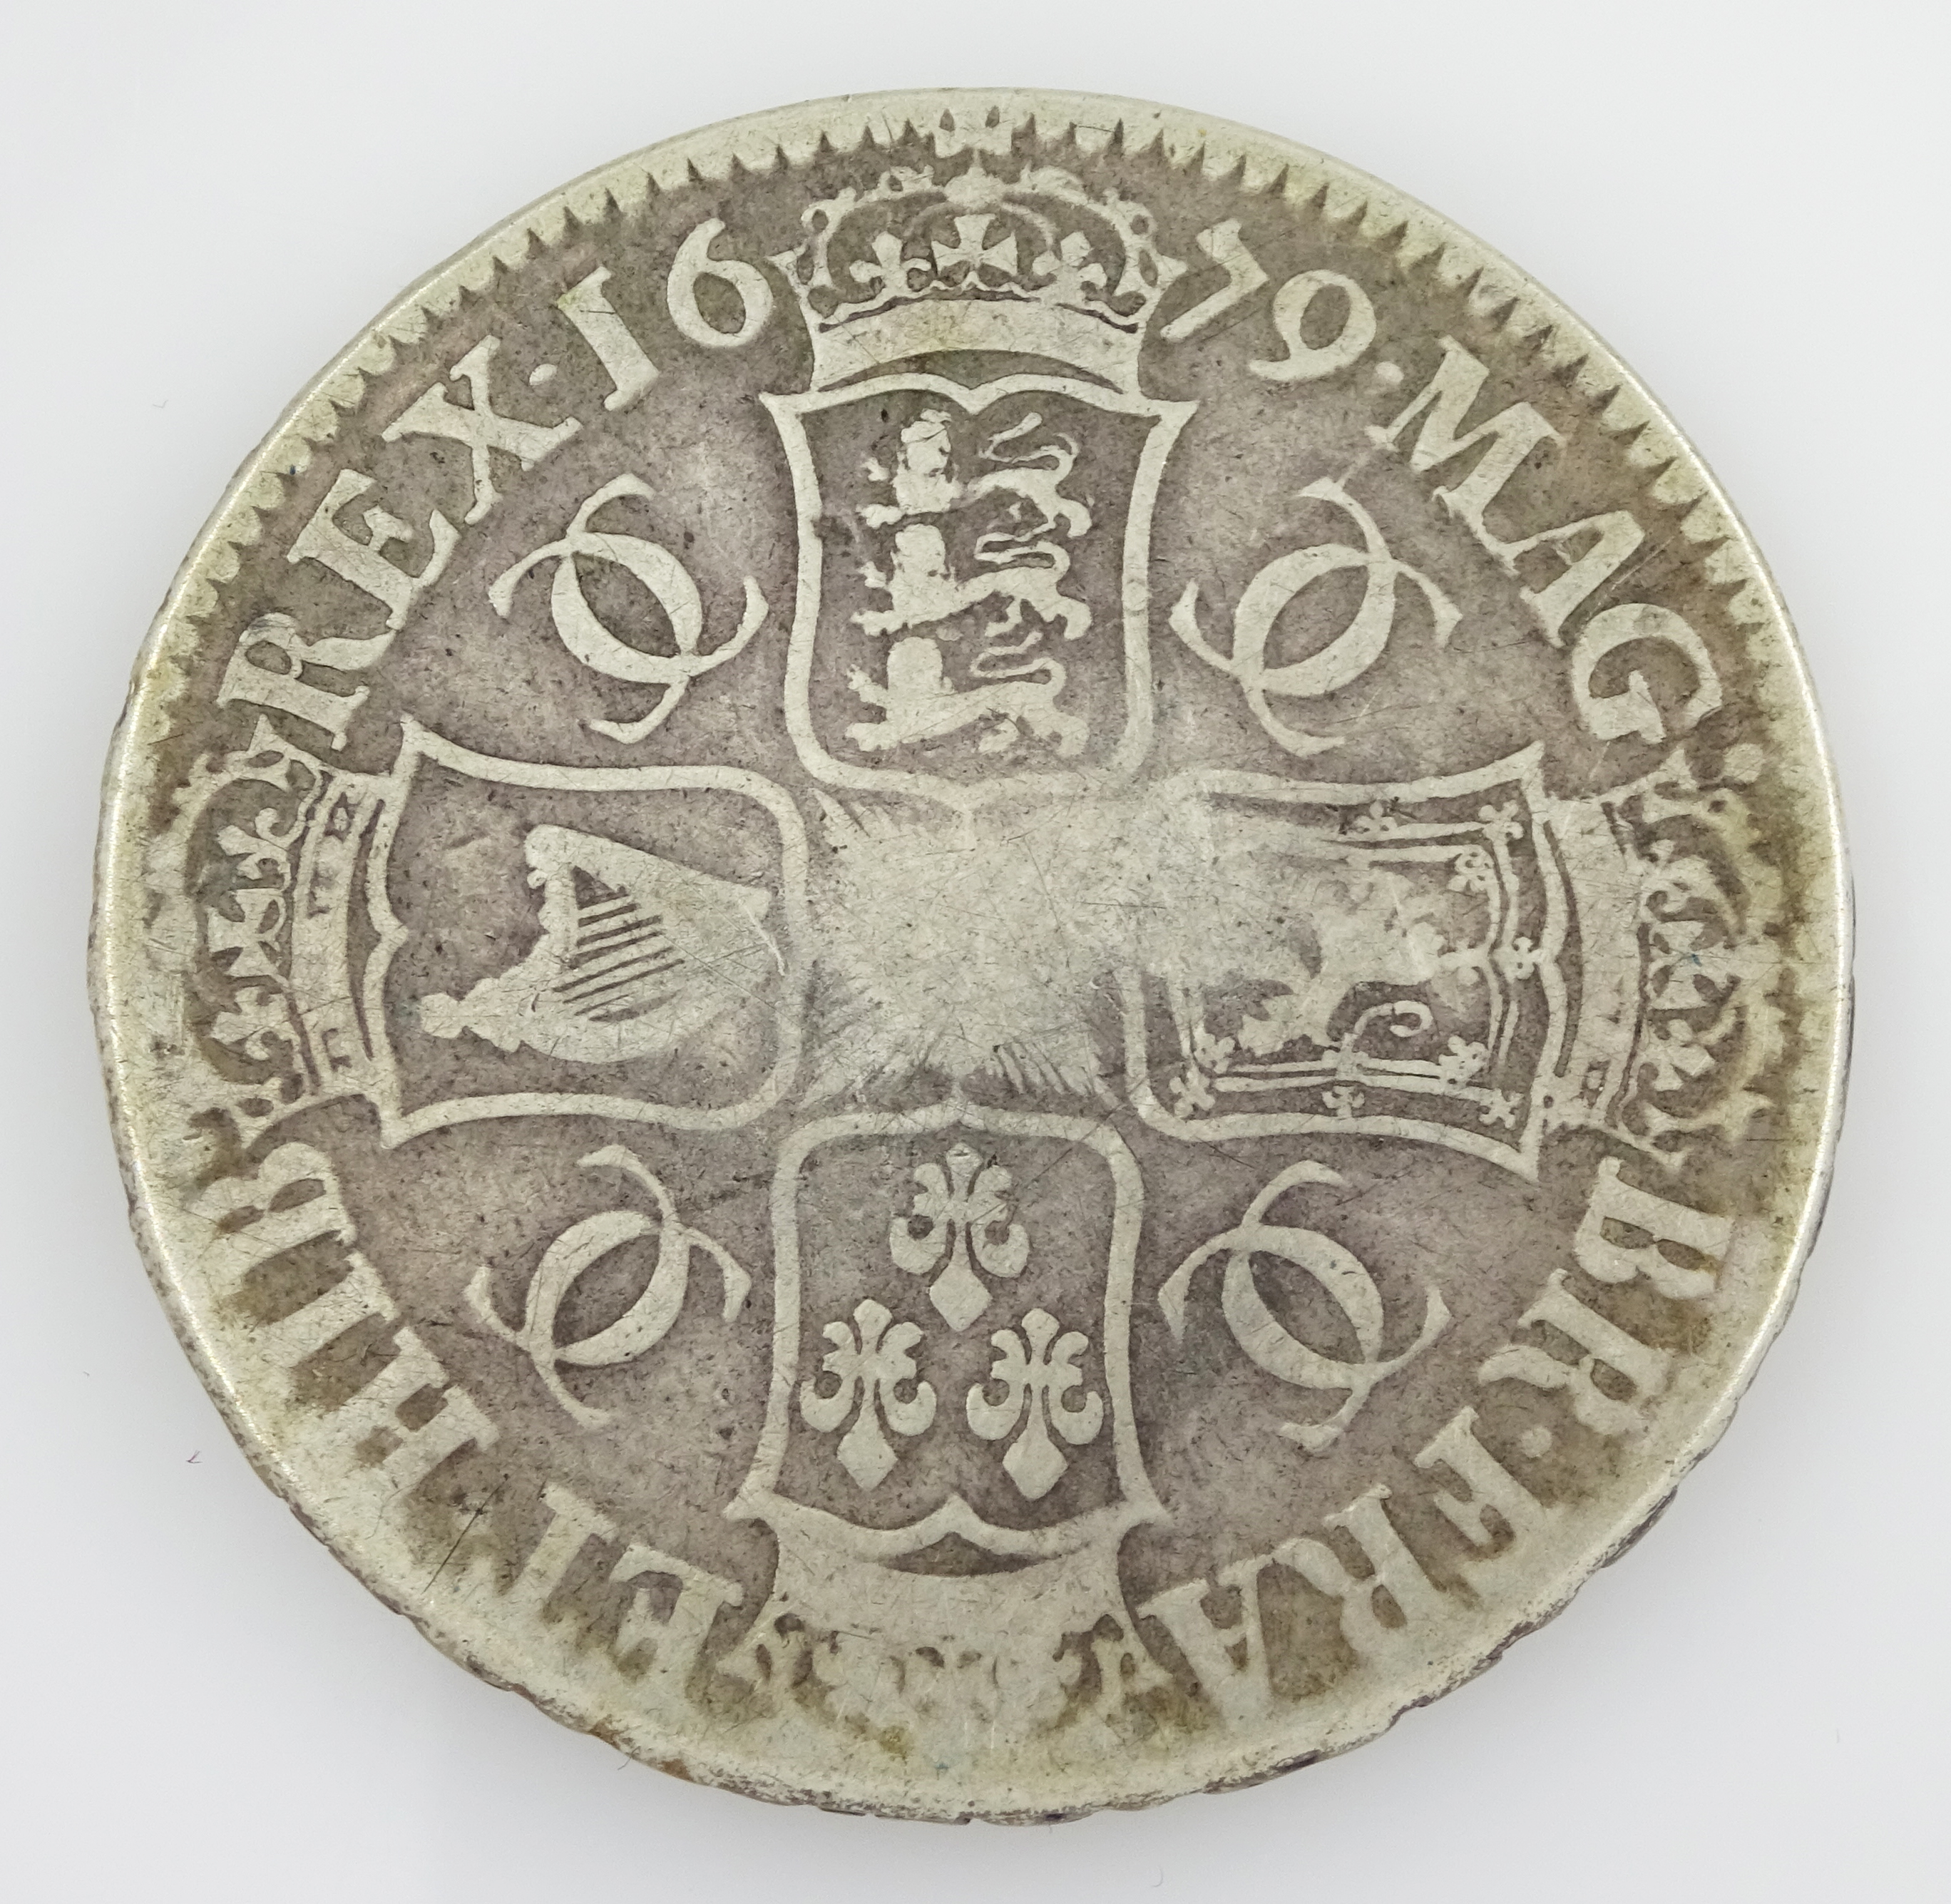 King Charles II 1679 crown coin - Image 3 of 3